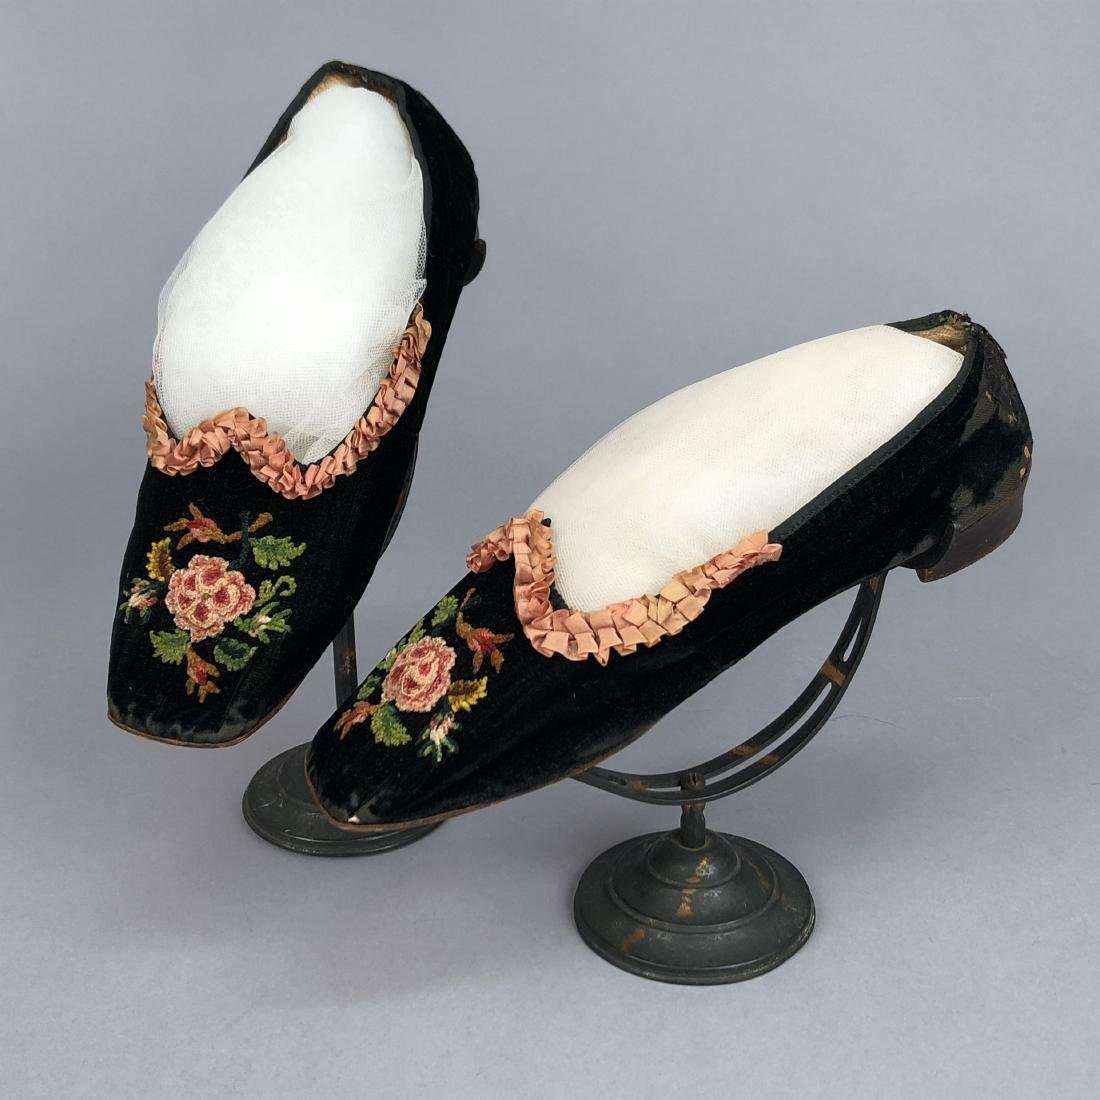 VELVET SLIPPERS with CHENILLE EMBROIDERY, c. 1860